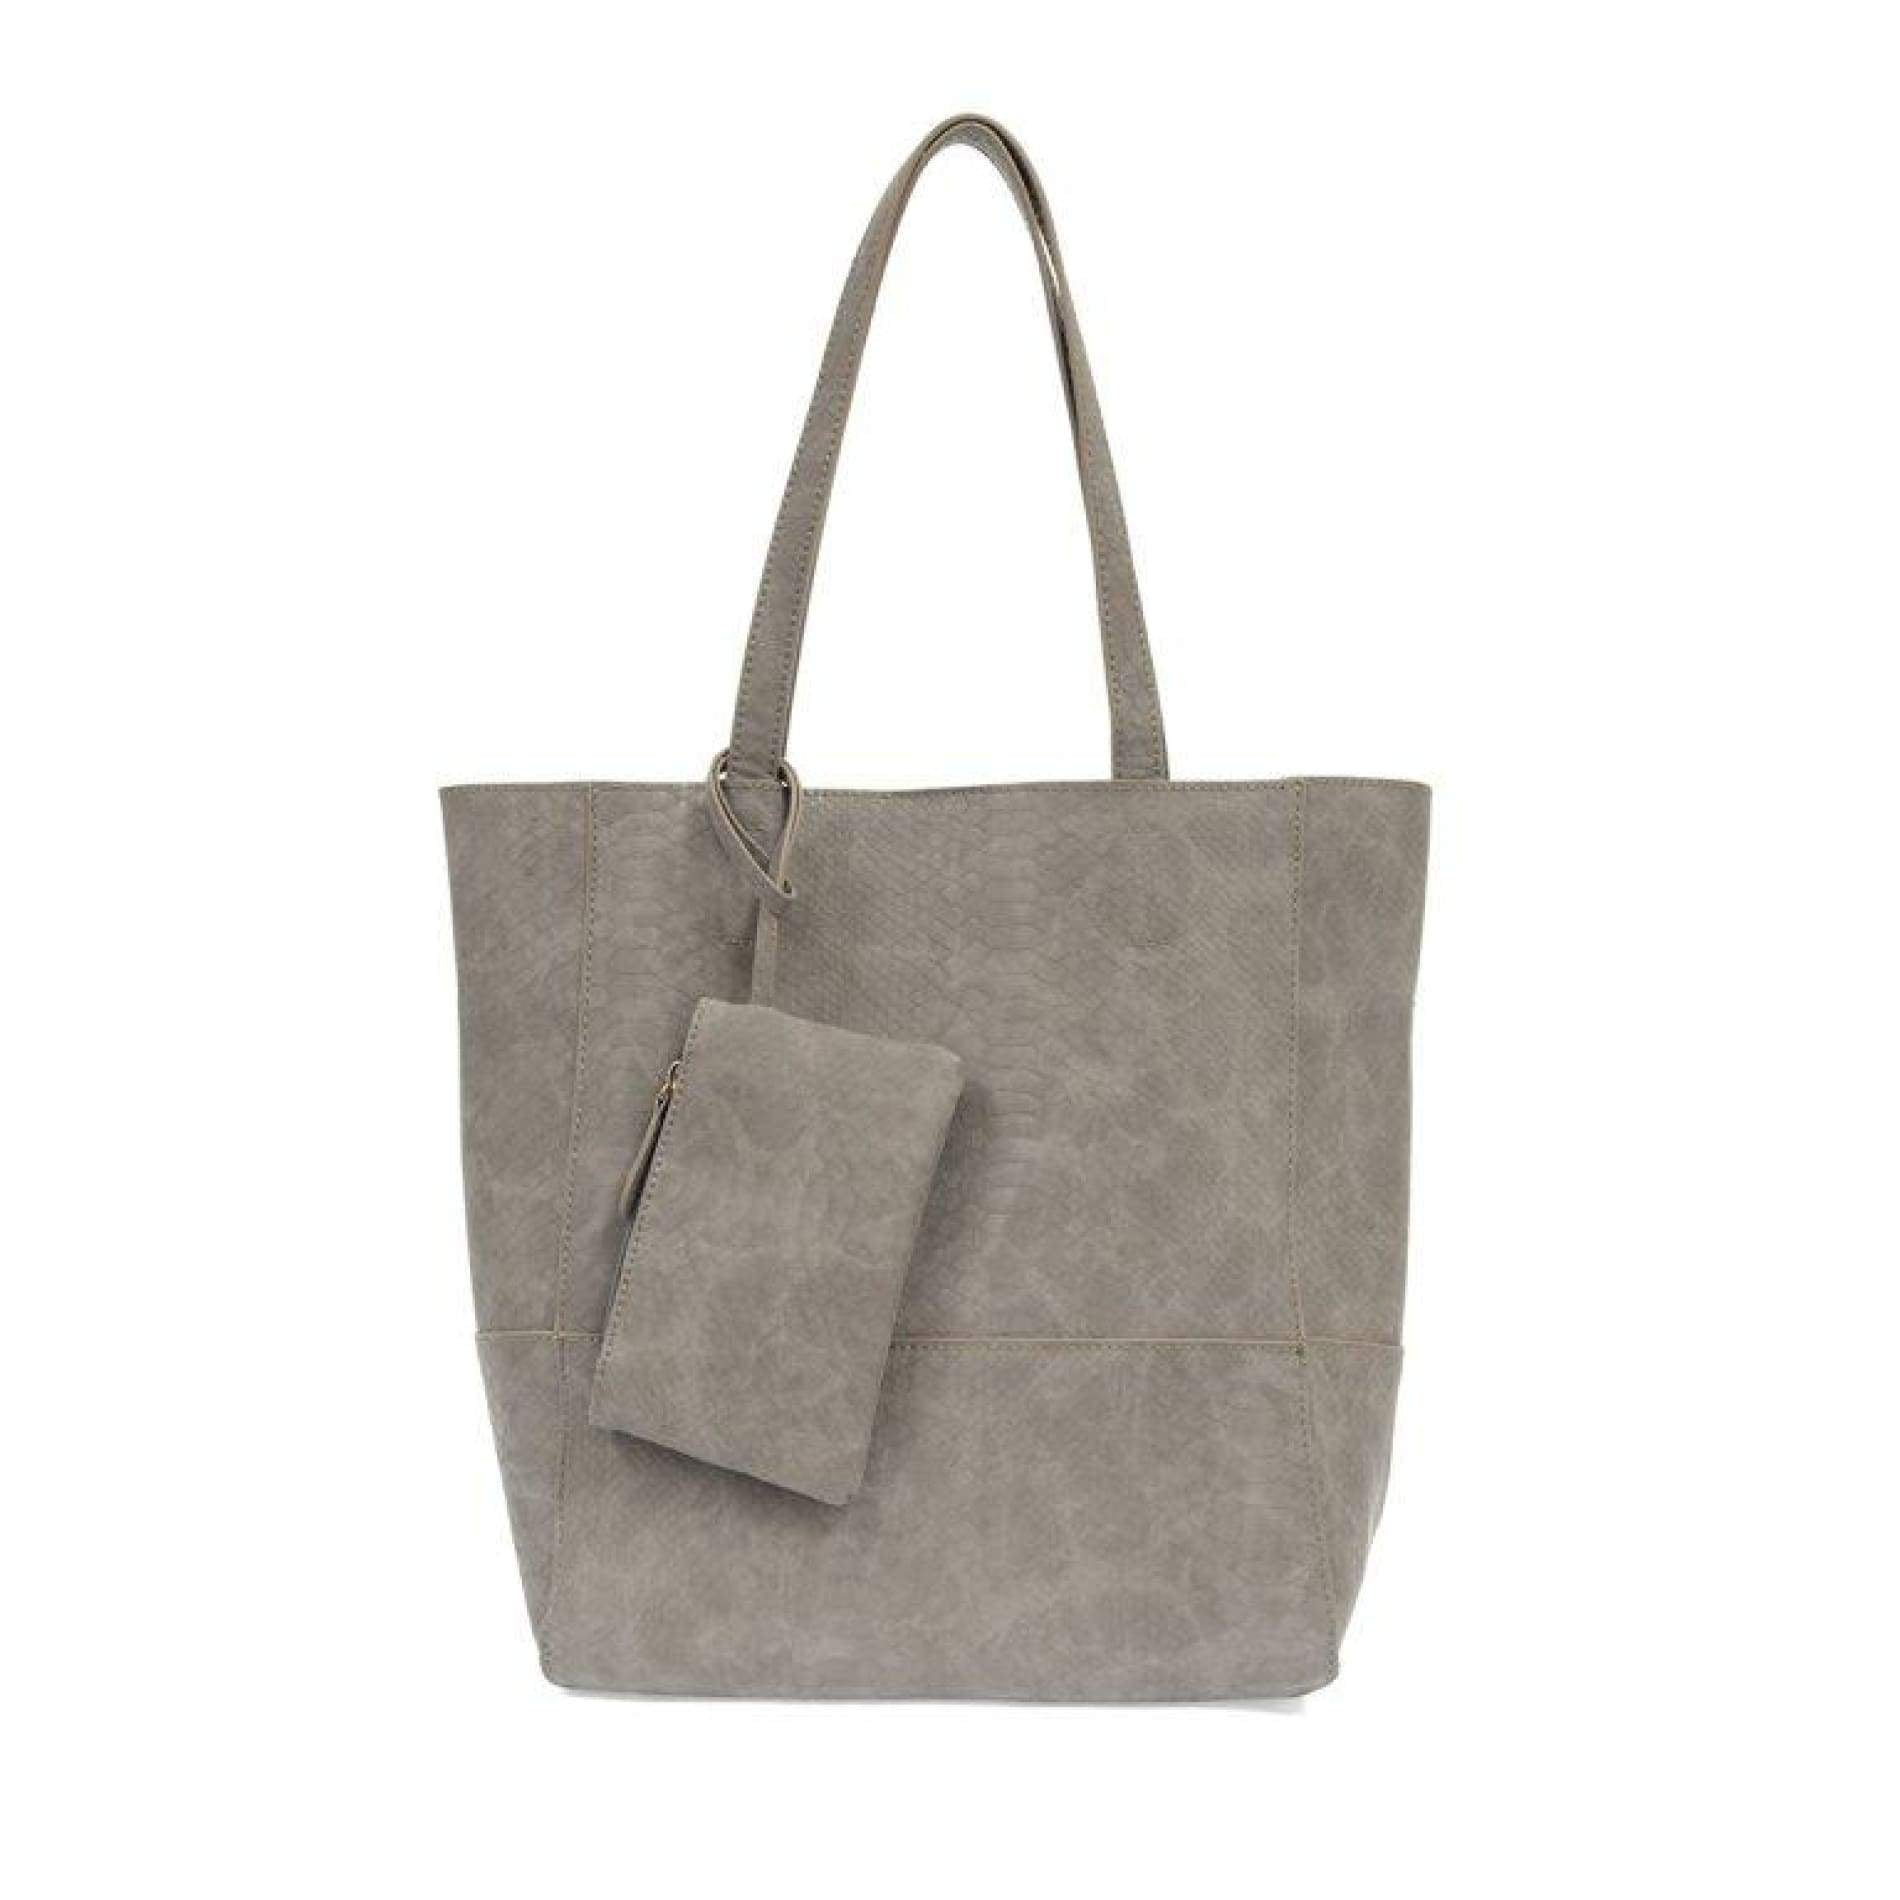 Avery Python Tote Handbag - Smoke - Accessories